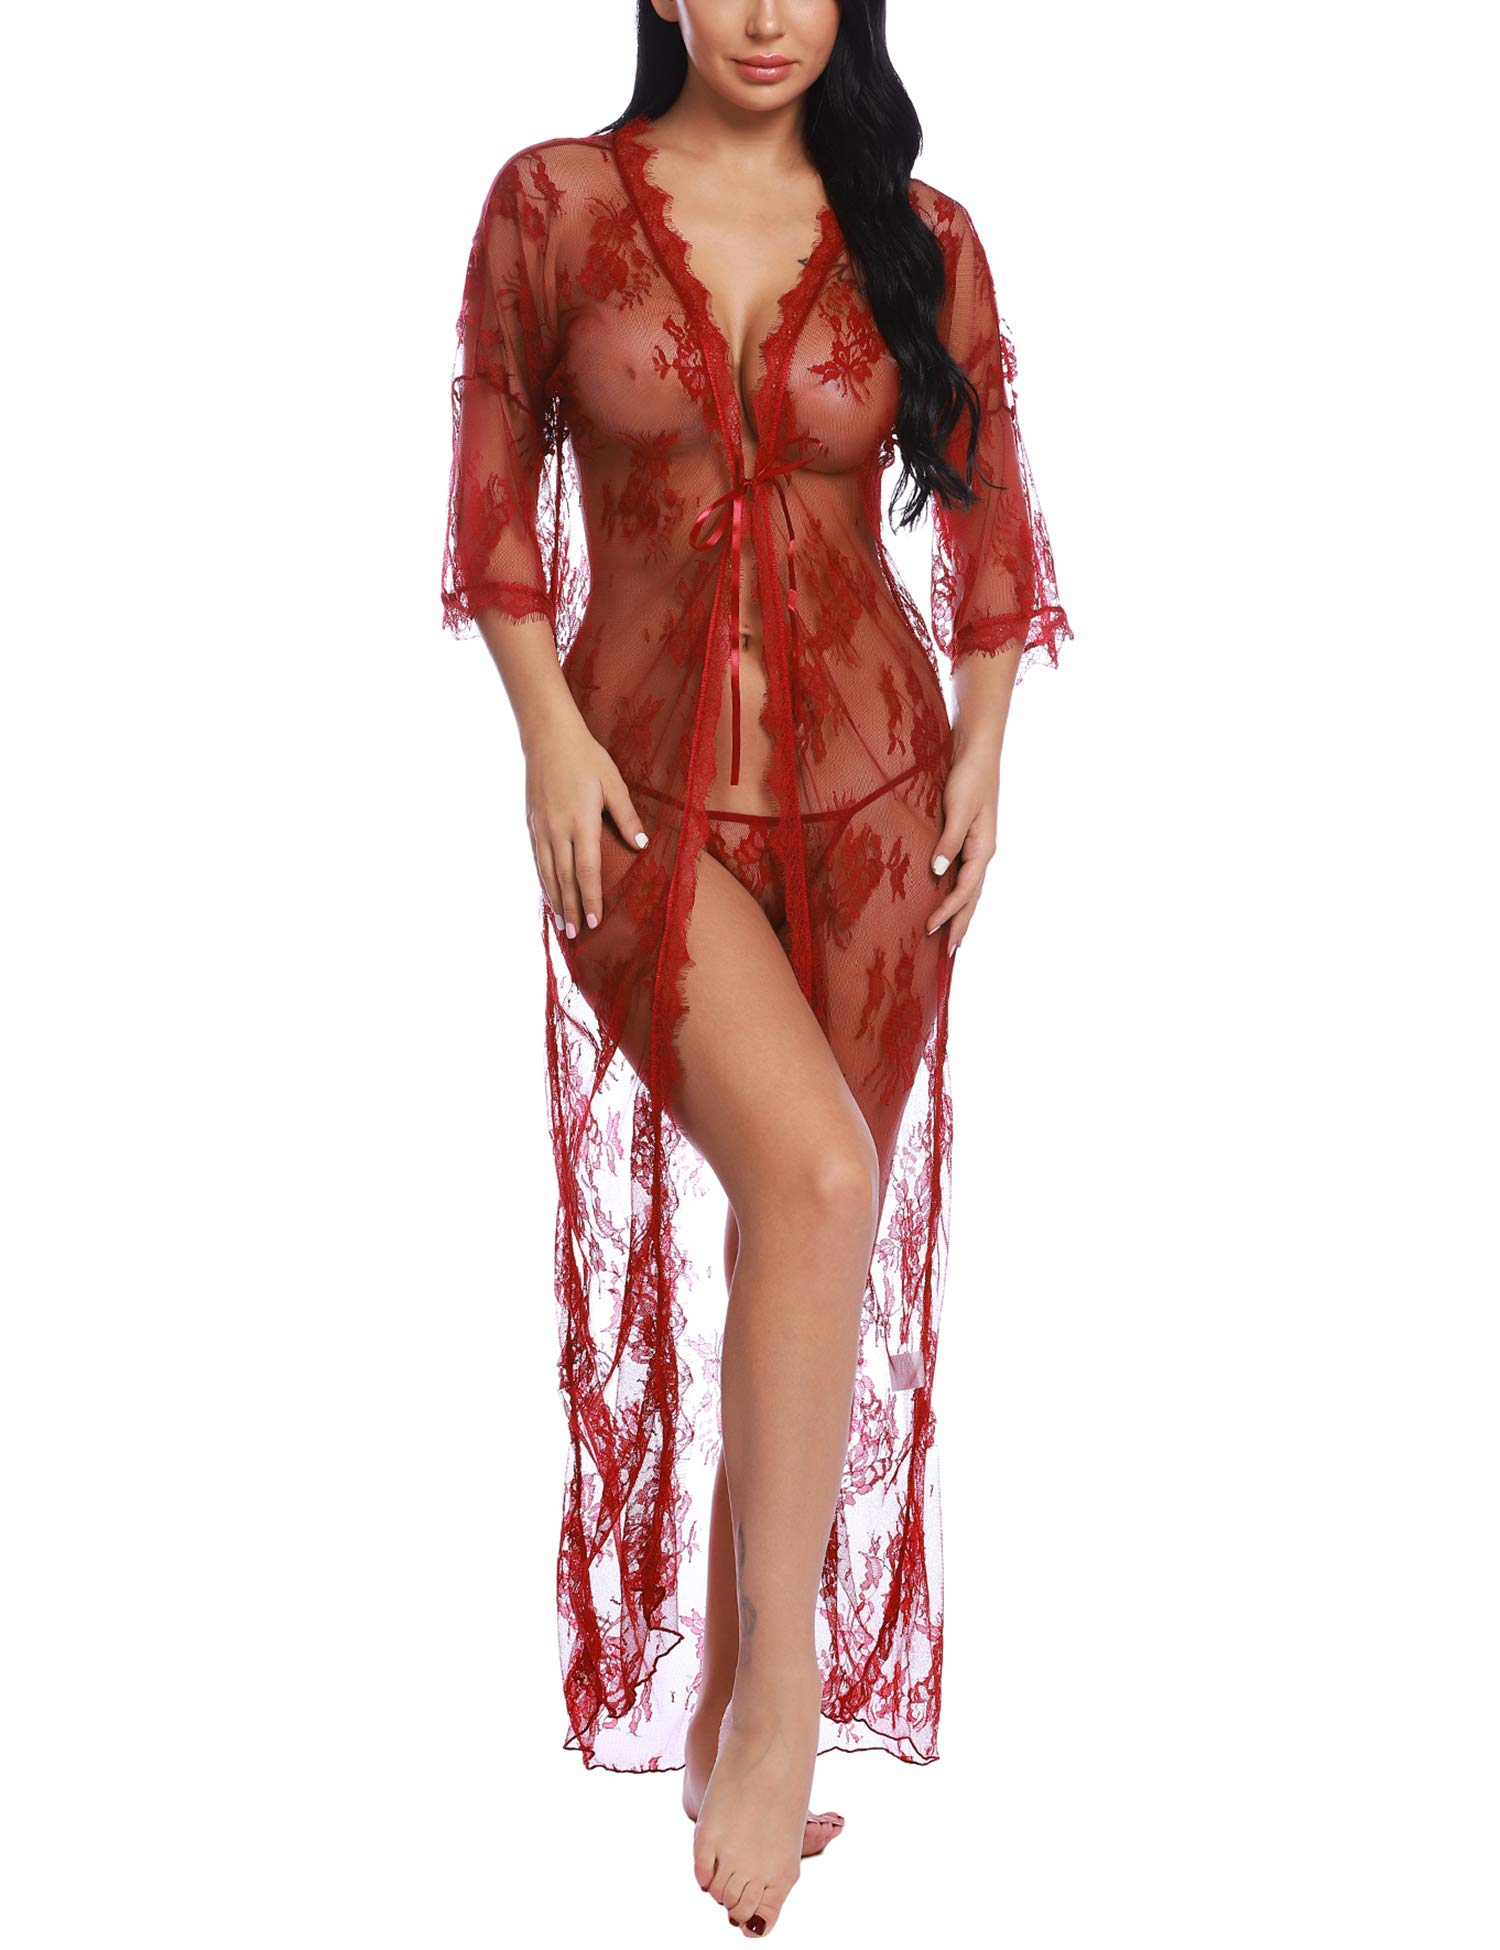 Ababoon Womens Lingerie Lace Long Robe 3/4 Sleeve Sexy Sheer Kimono Mesh Nightgown for Sex